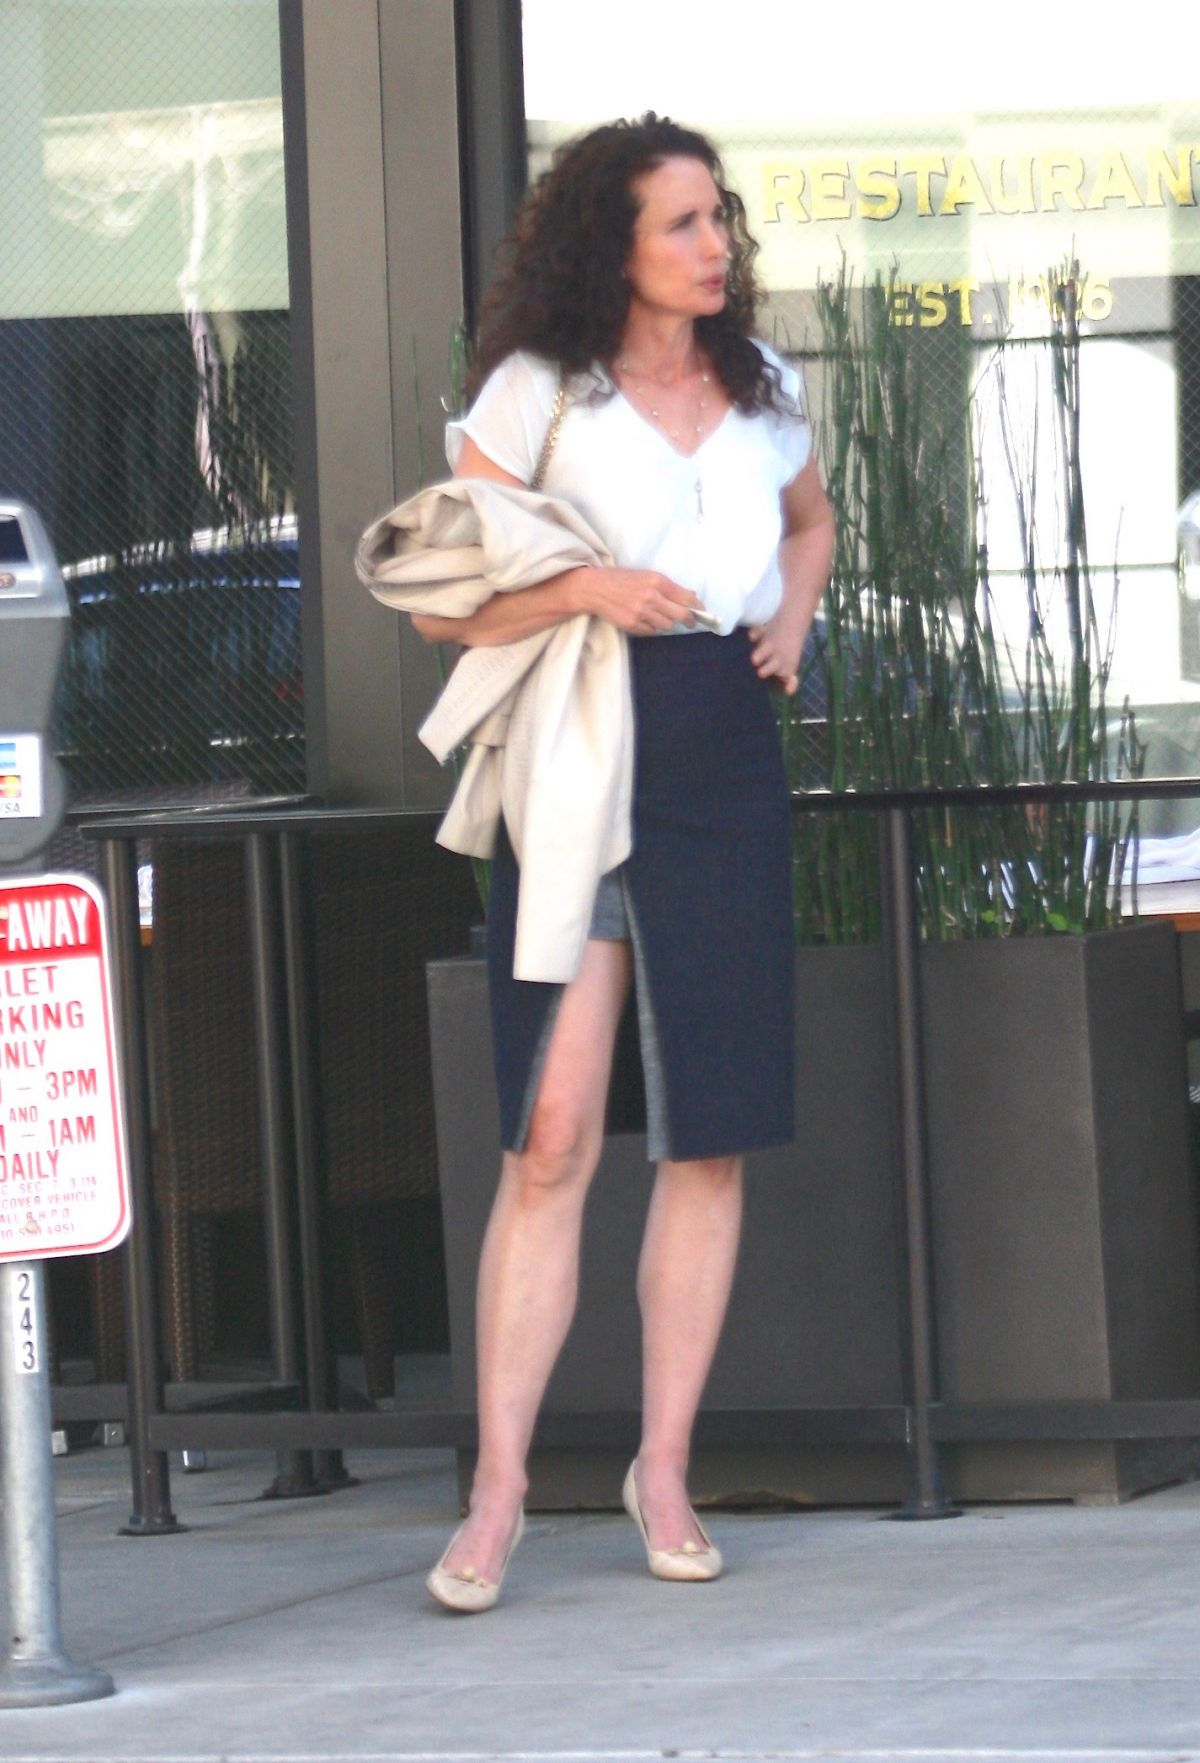 Andie macdowell at the palm restaurant in beverly hills 02 22 2016